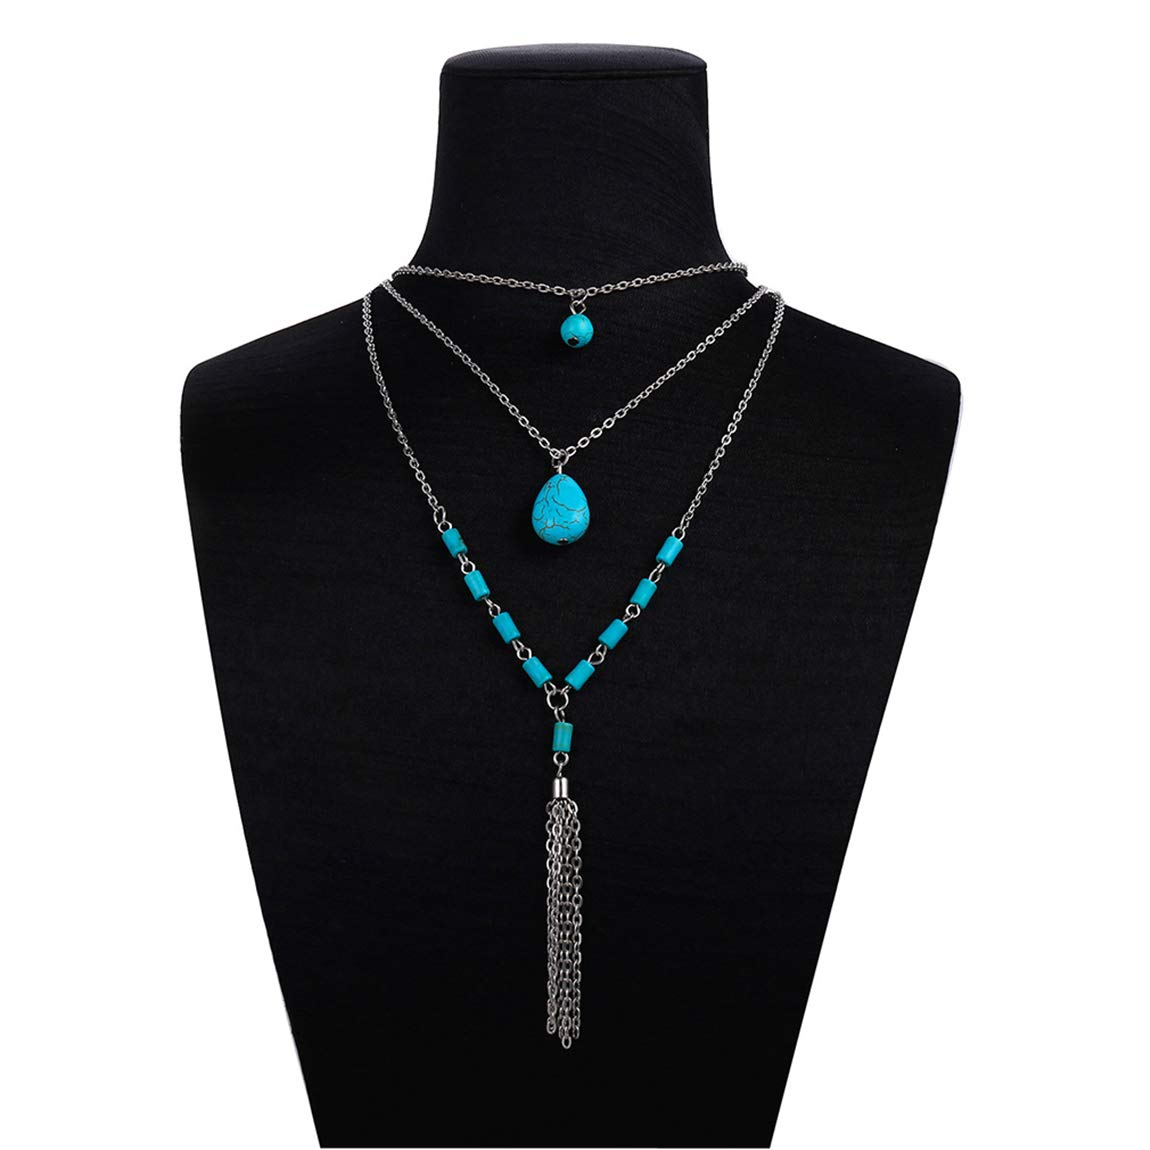 Weiy Bohemian Multilayer Turquoise Tassel Sweater Chain Necklace Women Girls Fahsion Charming Vintage Long Chian Necklace Nice Jewelry Accessories Gift